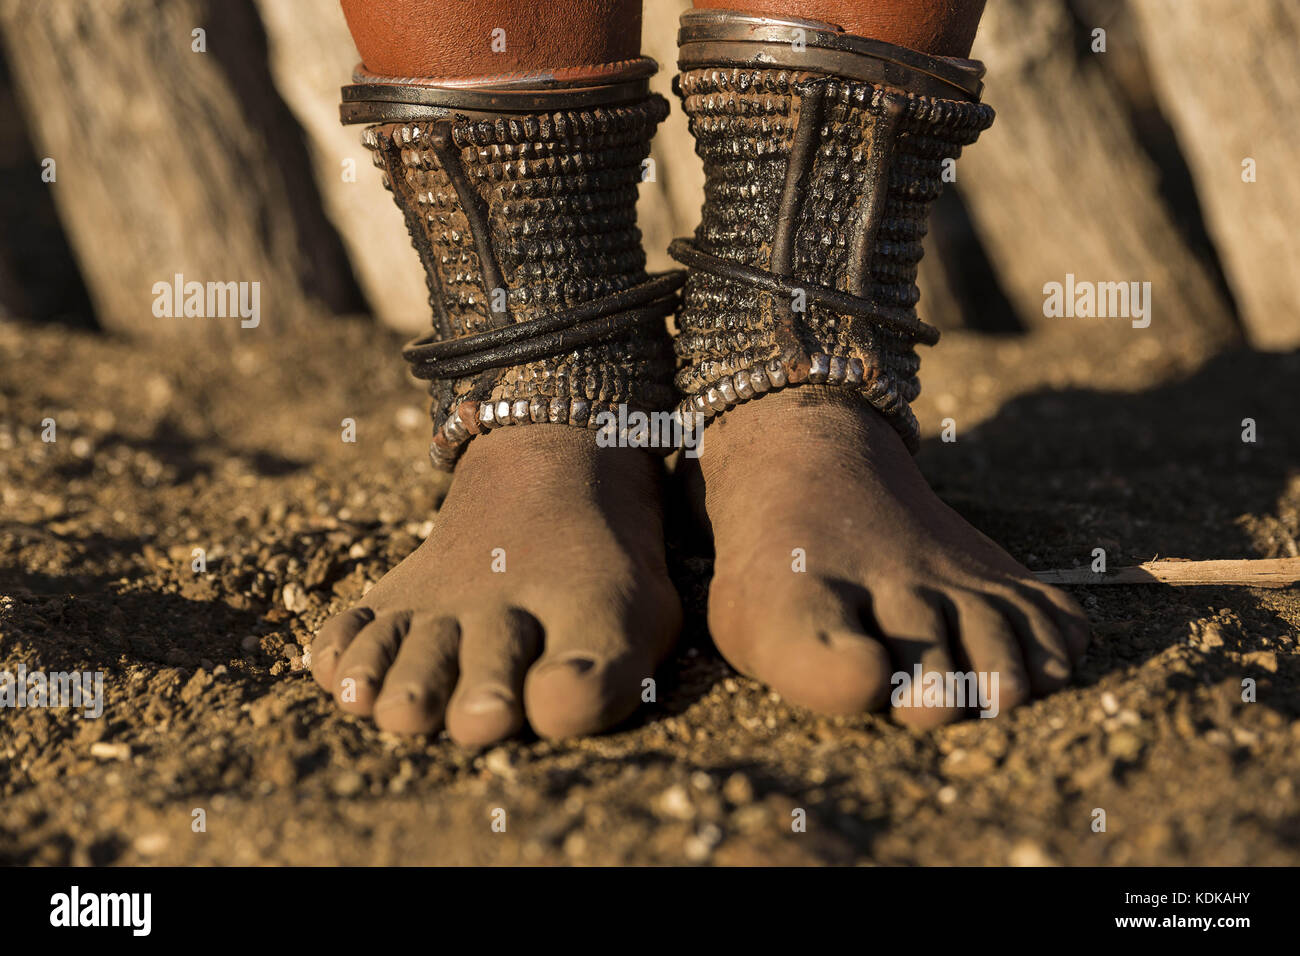 Kunene Region, Angola. 24th July, 2016. The adult Himba women all have beaded anklets (Omohanga) which help them hide their money. The anklets also protect the legs from venomous animal bites. Credit: Tariq Zaidiz/Reportage.com/ZUMA Wire/Alamy Live News Stock Photo